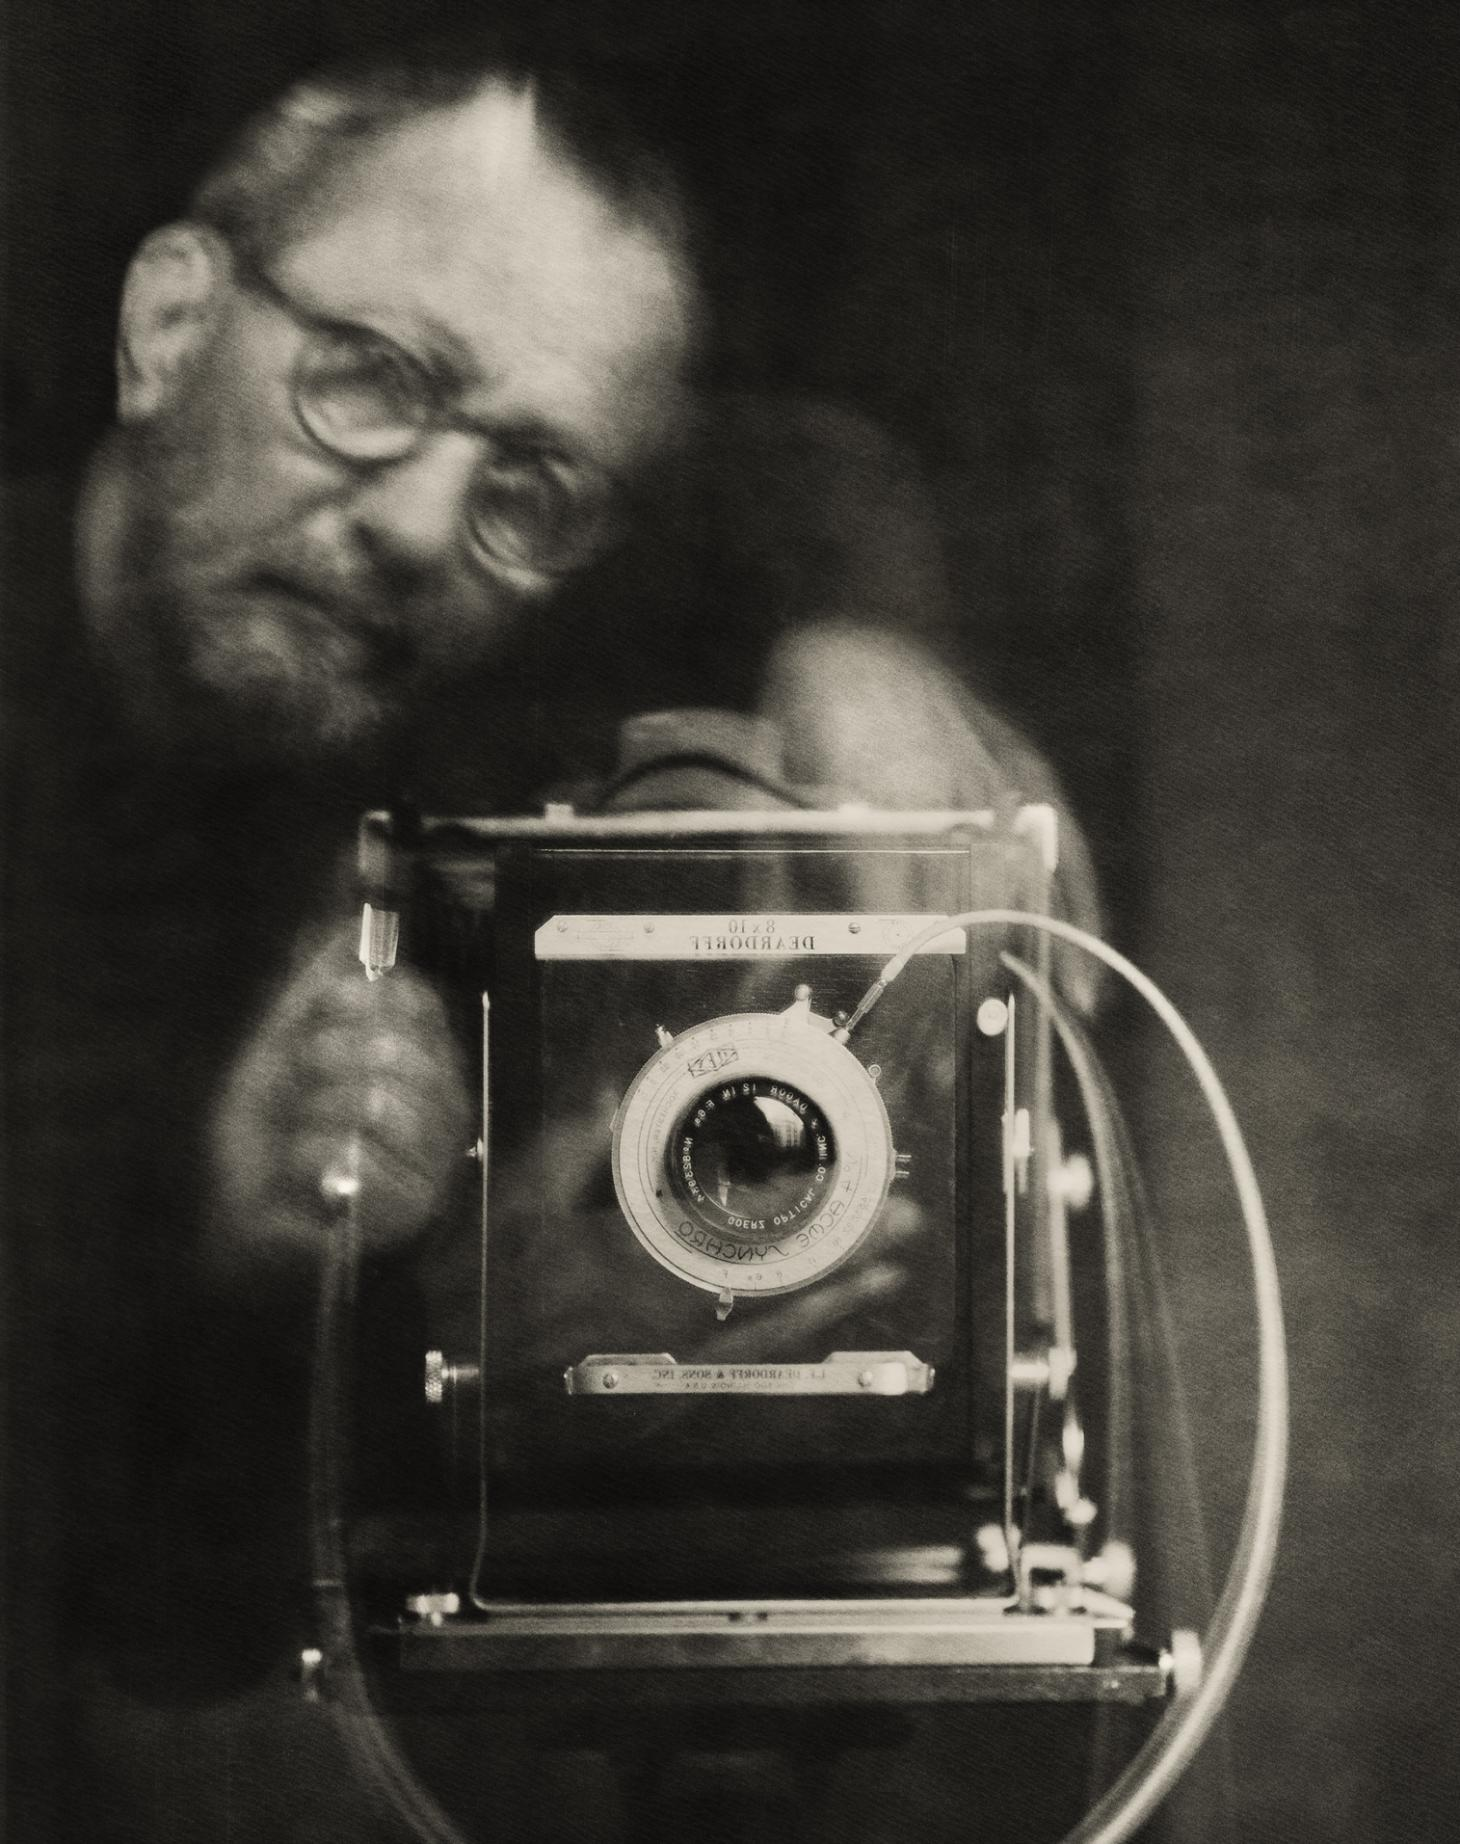 A self portrait of Paolo Roversi